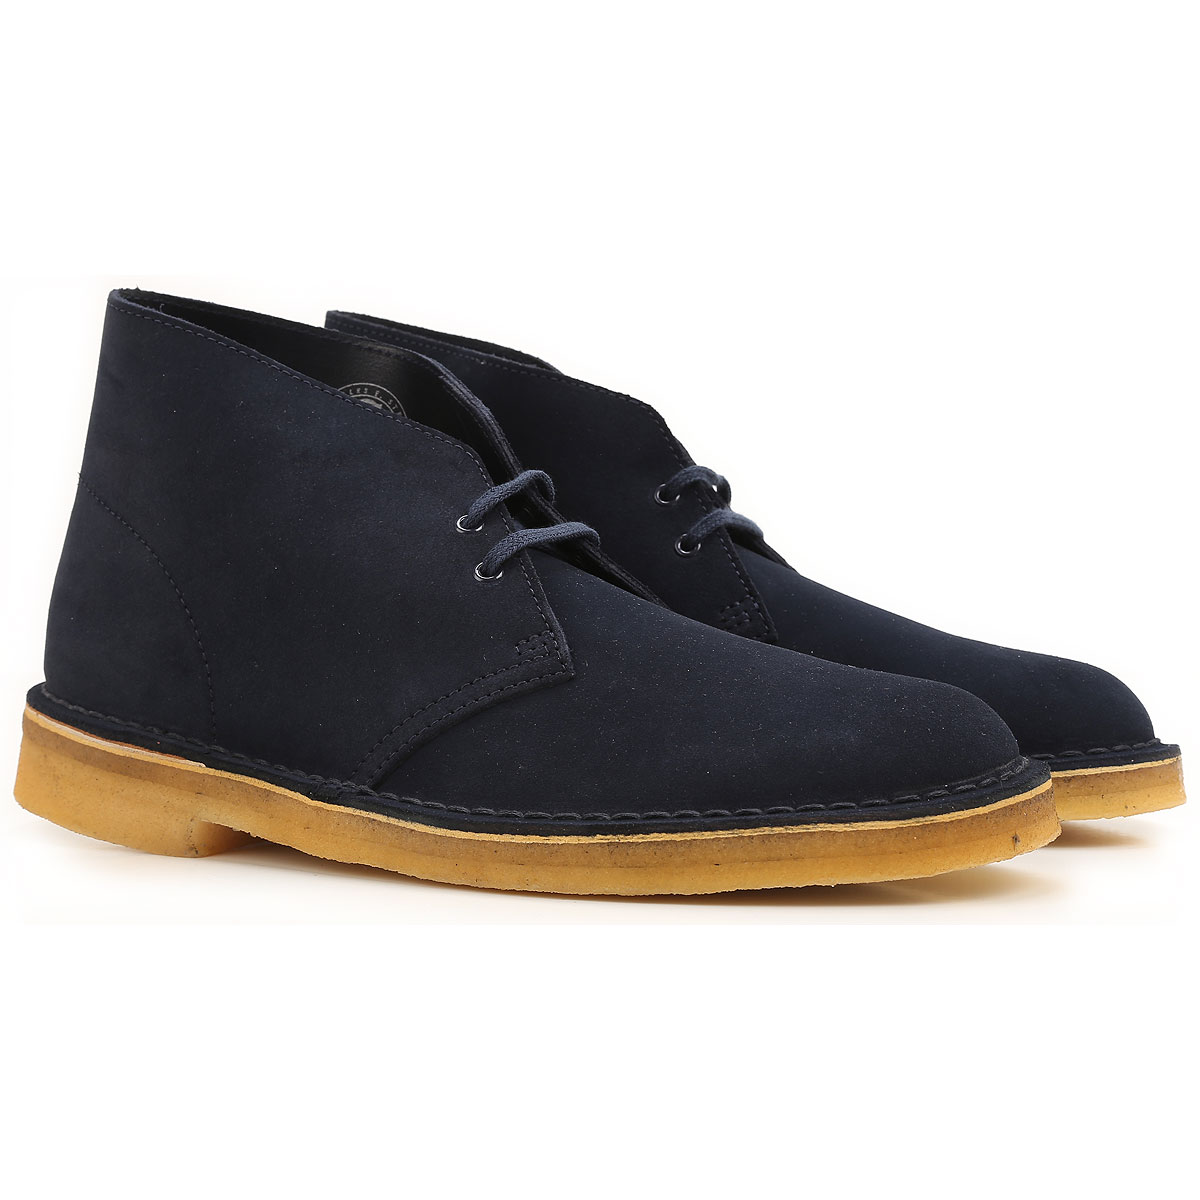 Image of Clarks Desert Boots Chukka for Men On Sale, Dark Midnight, Suede leather, 2017, 10.5 11 11.5 9.5